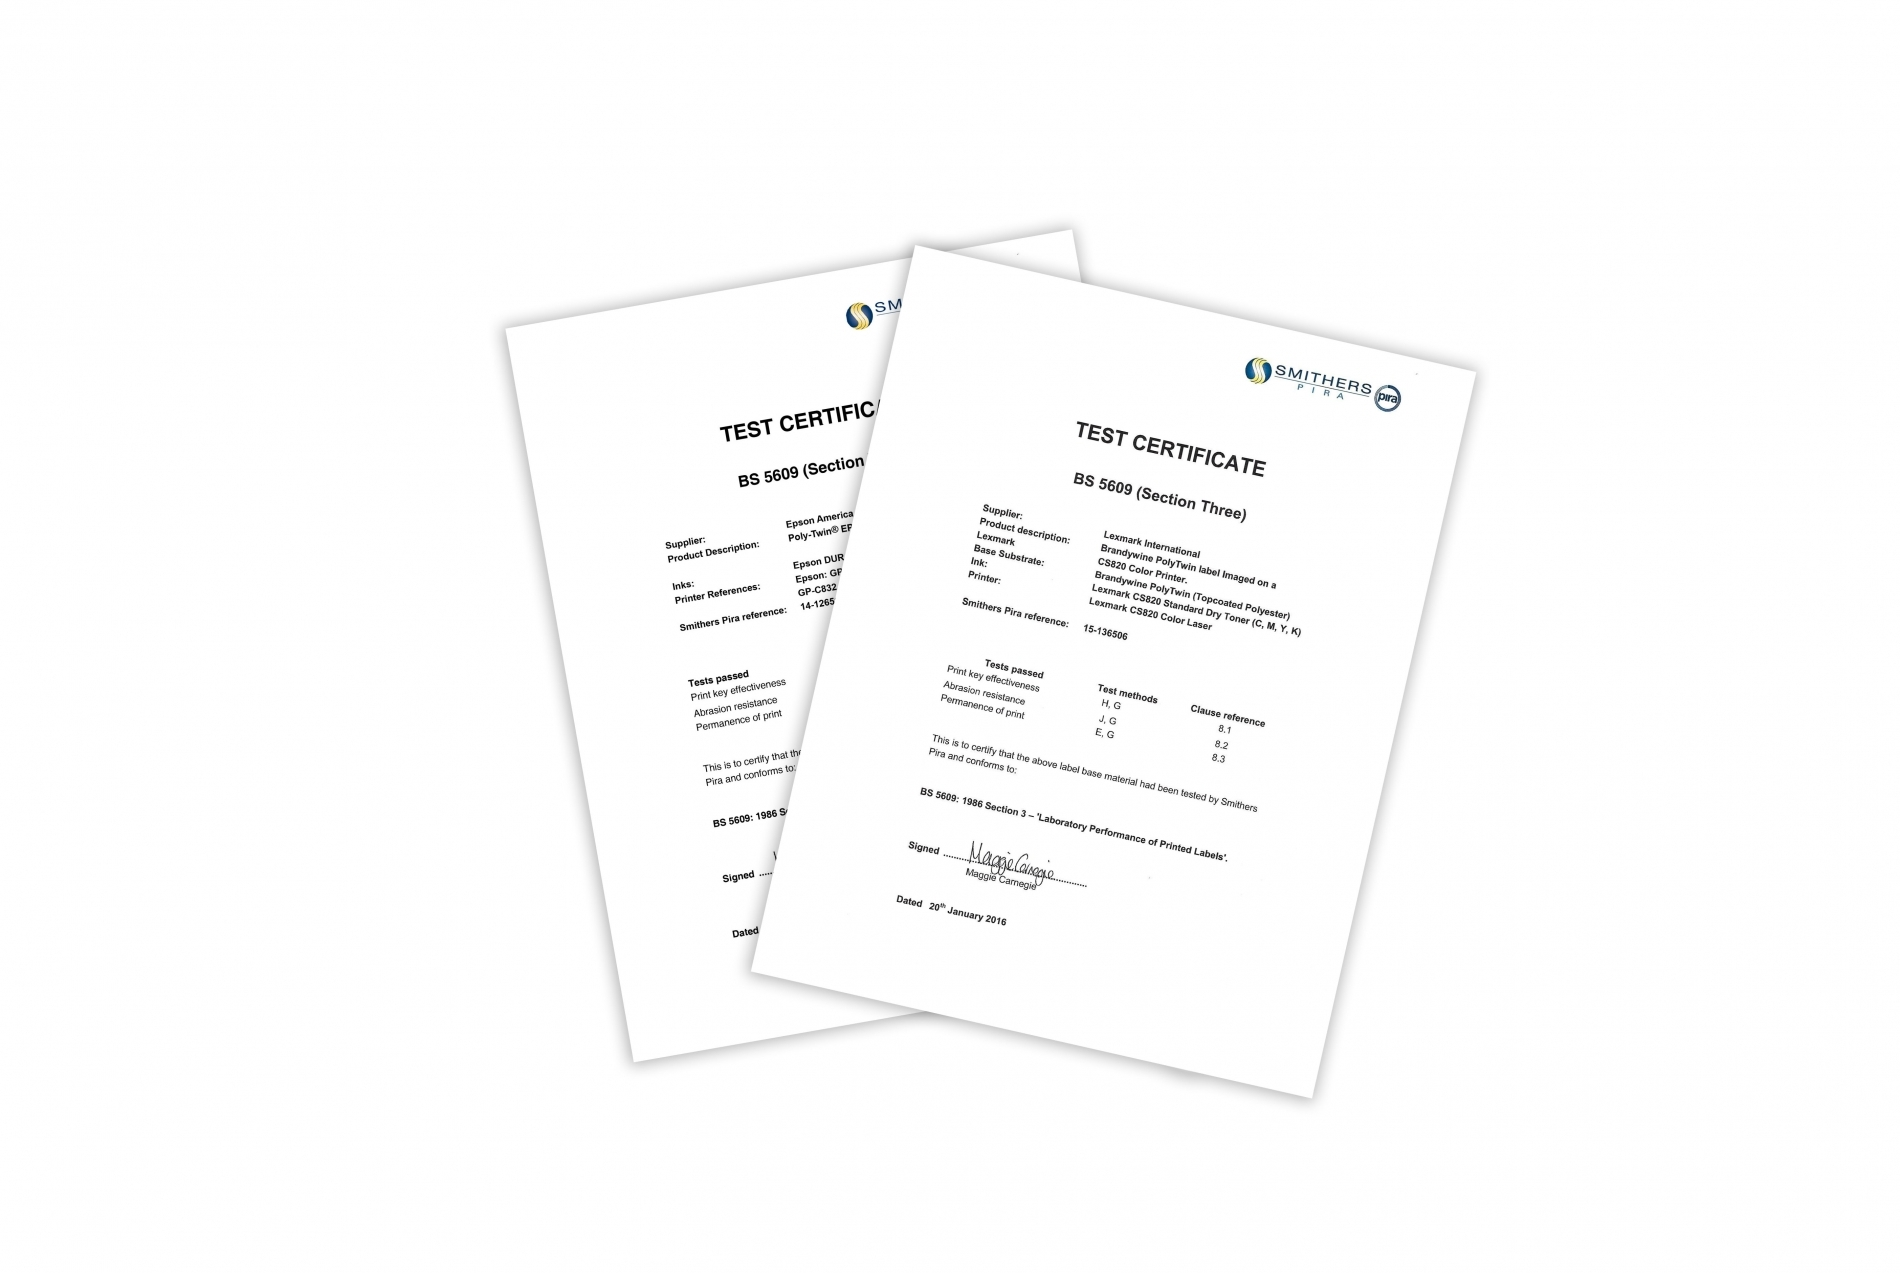 BS 5609 is a specification for printed pressure-sensitive labels for marine use